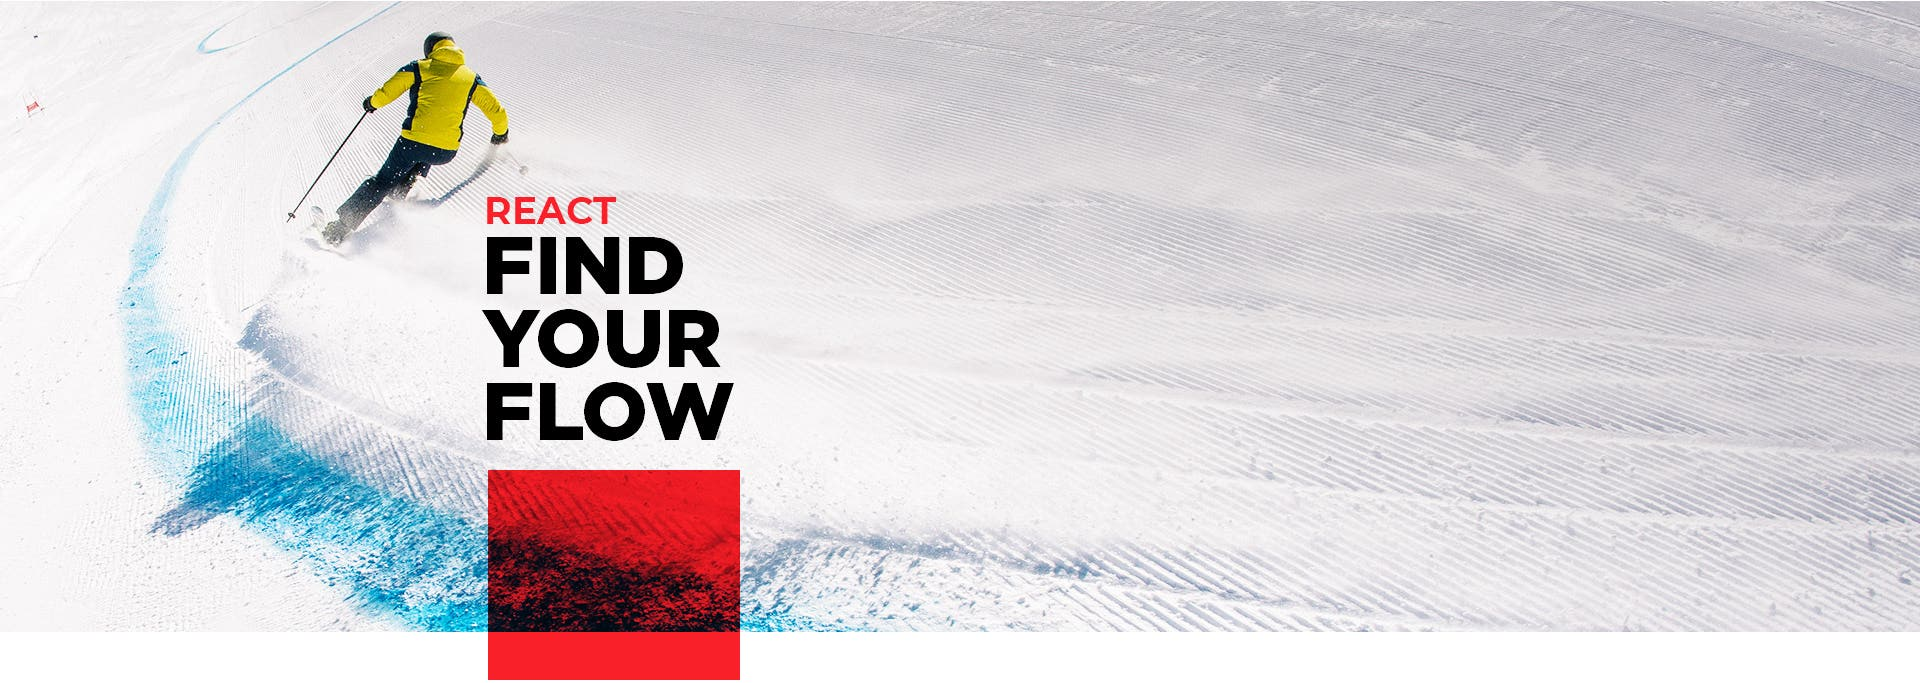 Rossignol Men ski range React - Find your flow